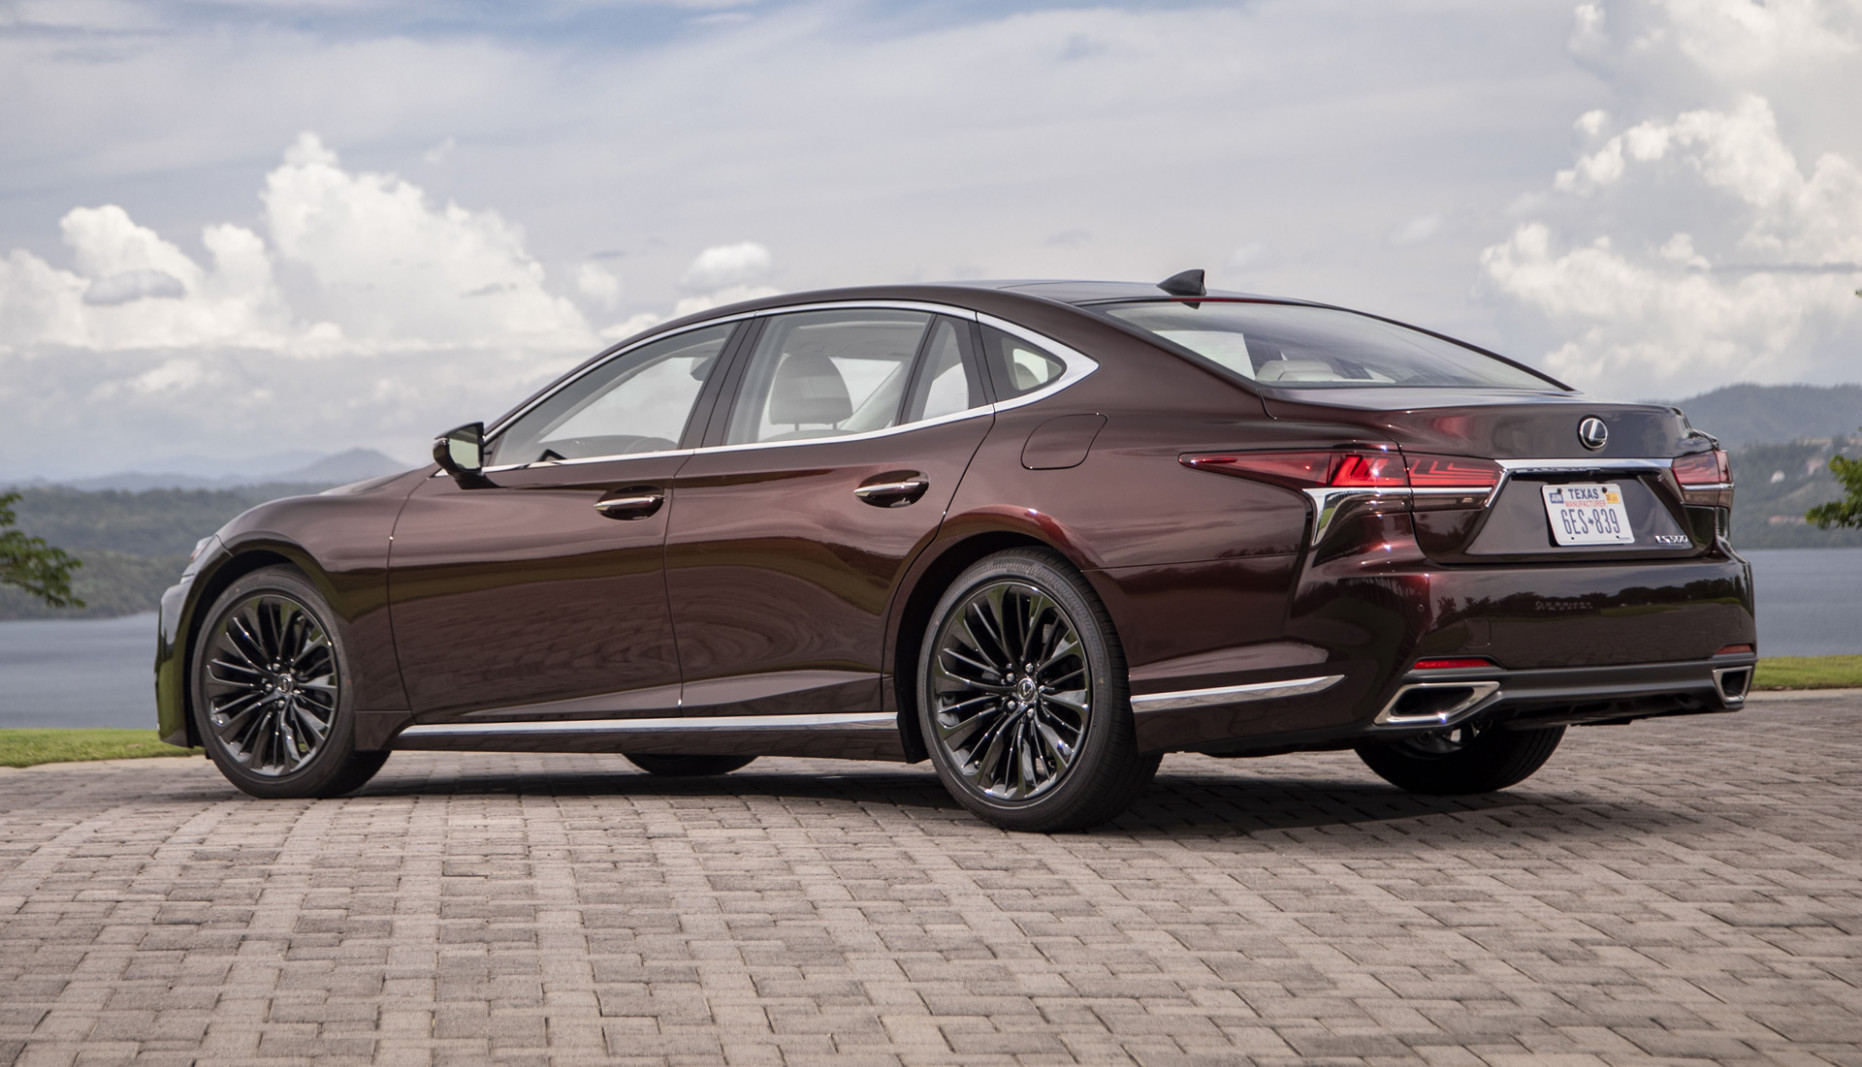 7 Lexus LS Review, Ratings, Specs, Prices, and Photos - The Car ..